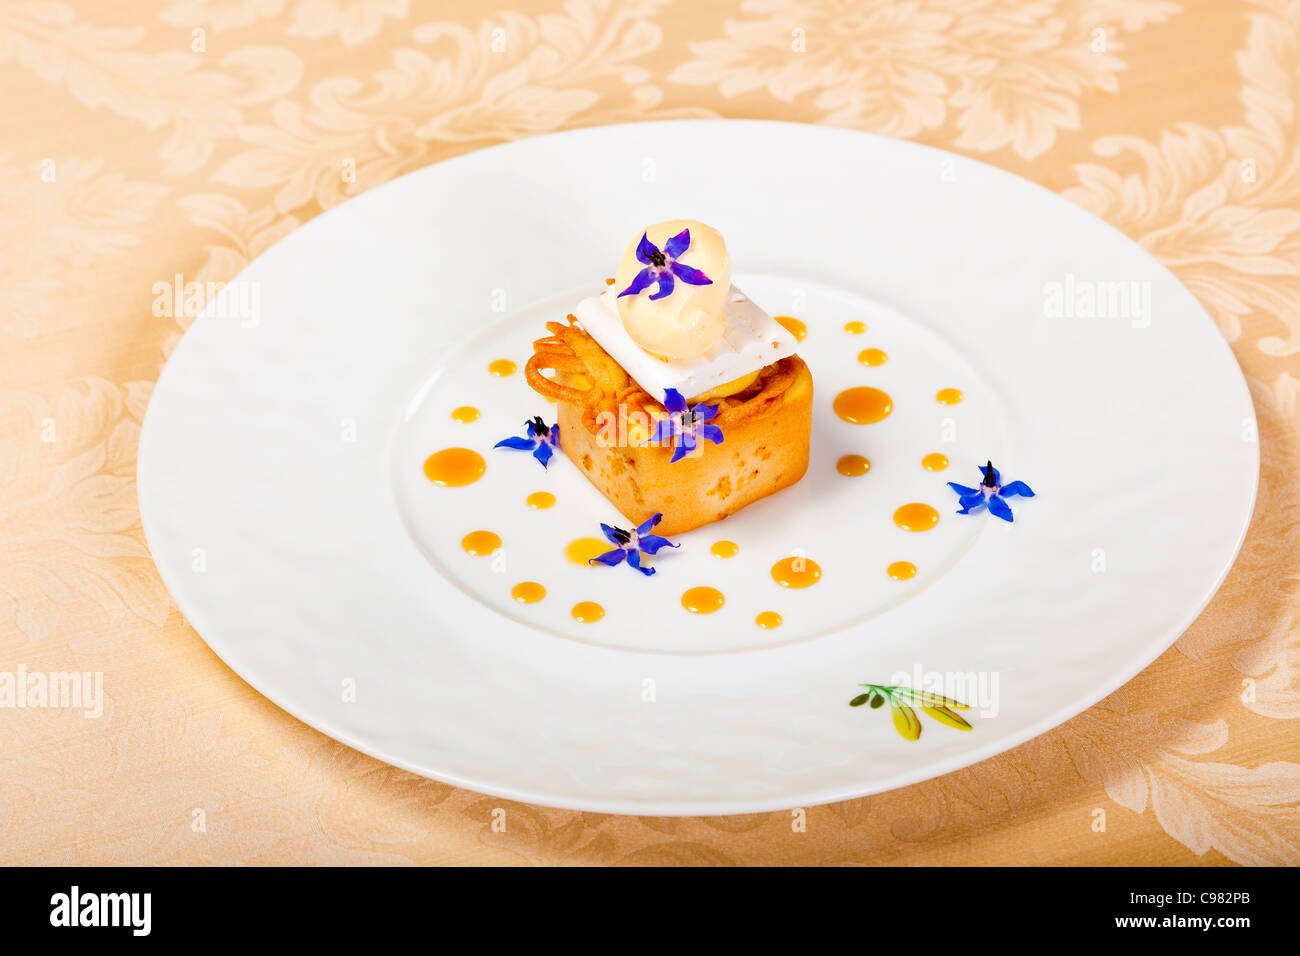 Details of a new version of a lemon tart., CHATEAU SAINT-MARTIN & SPA - 2490 Avenue des Templiers - BP 102  - Stock Image